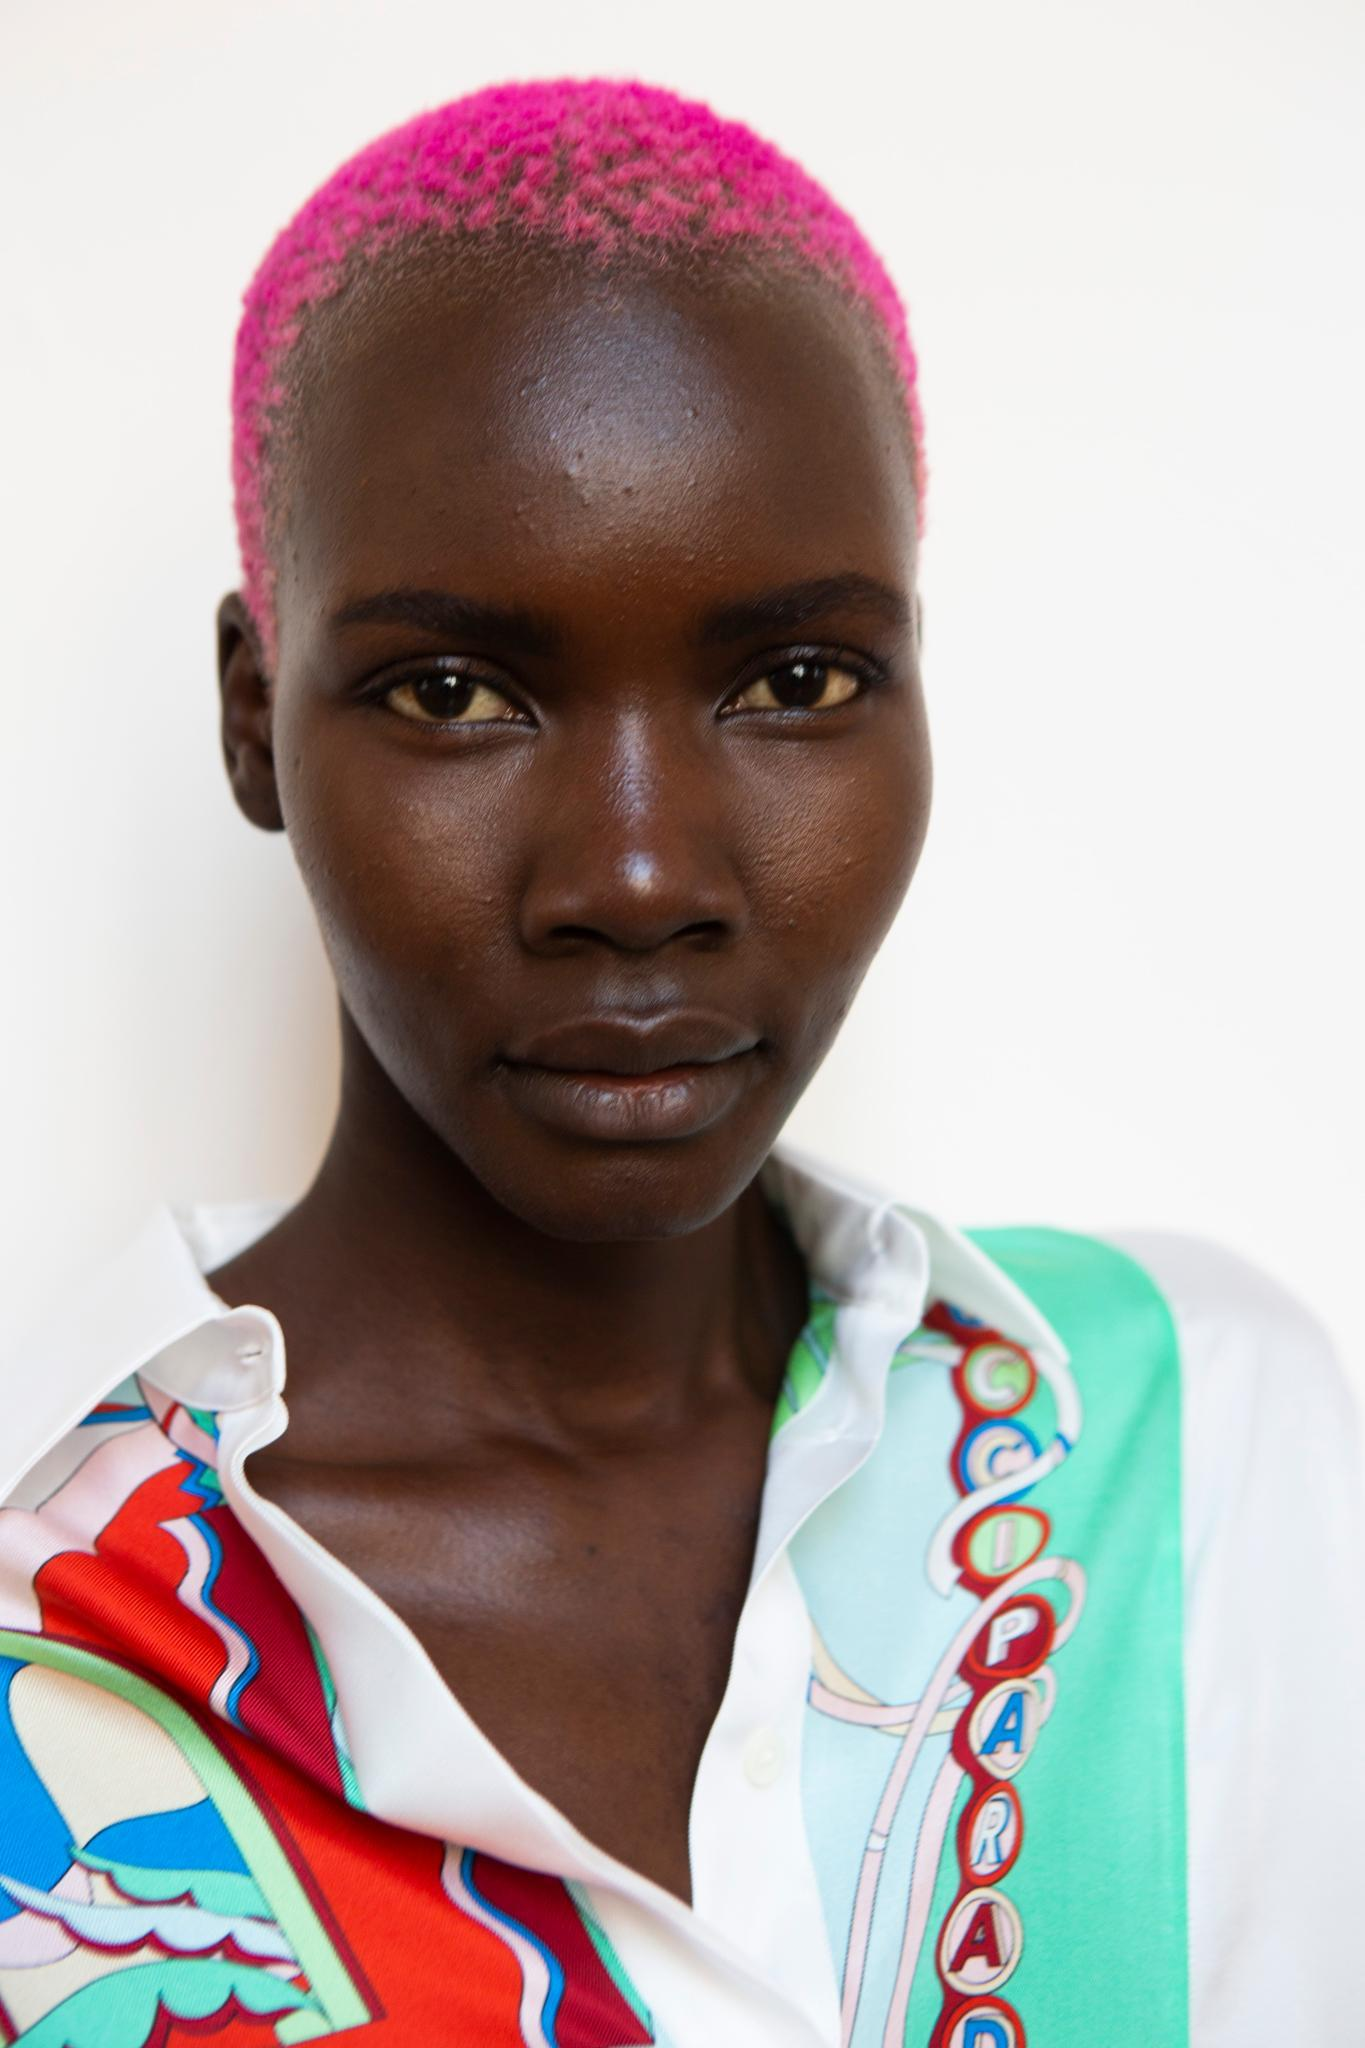 Short black hair: A black model with a shaved pink afro